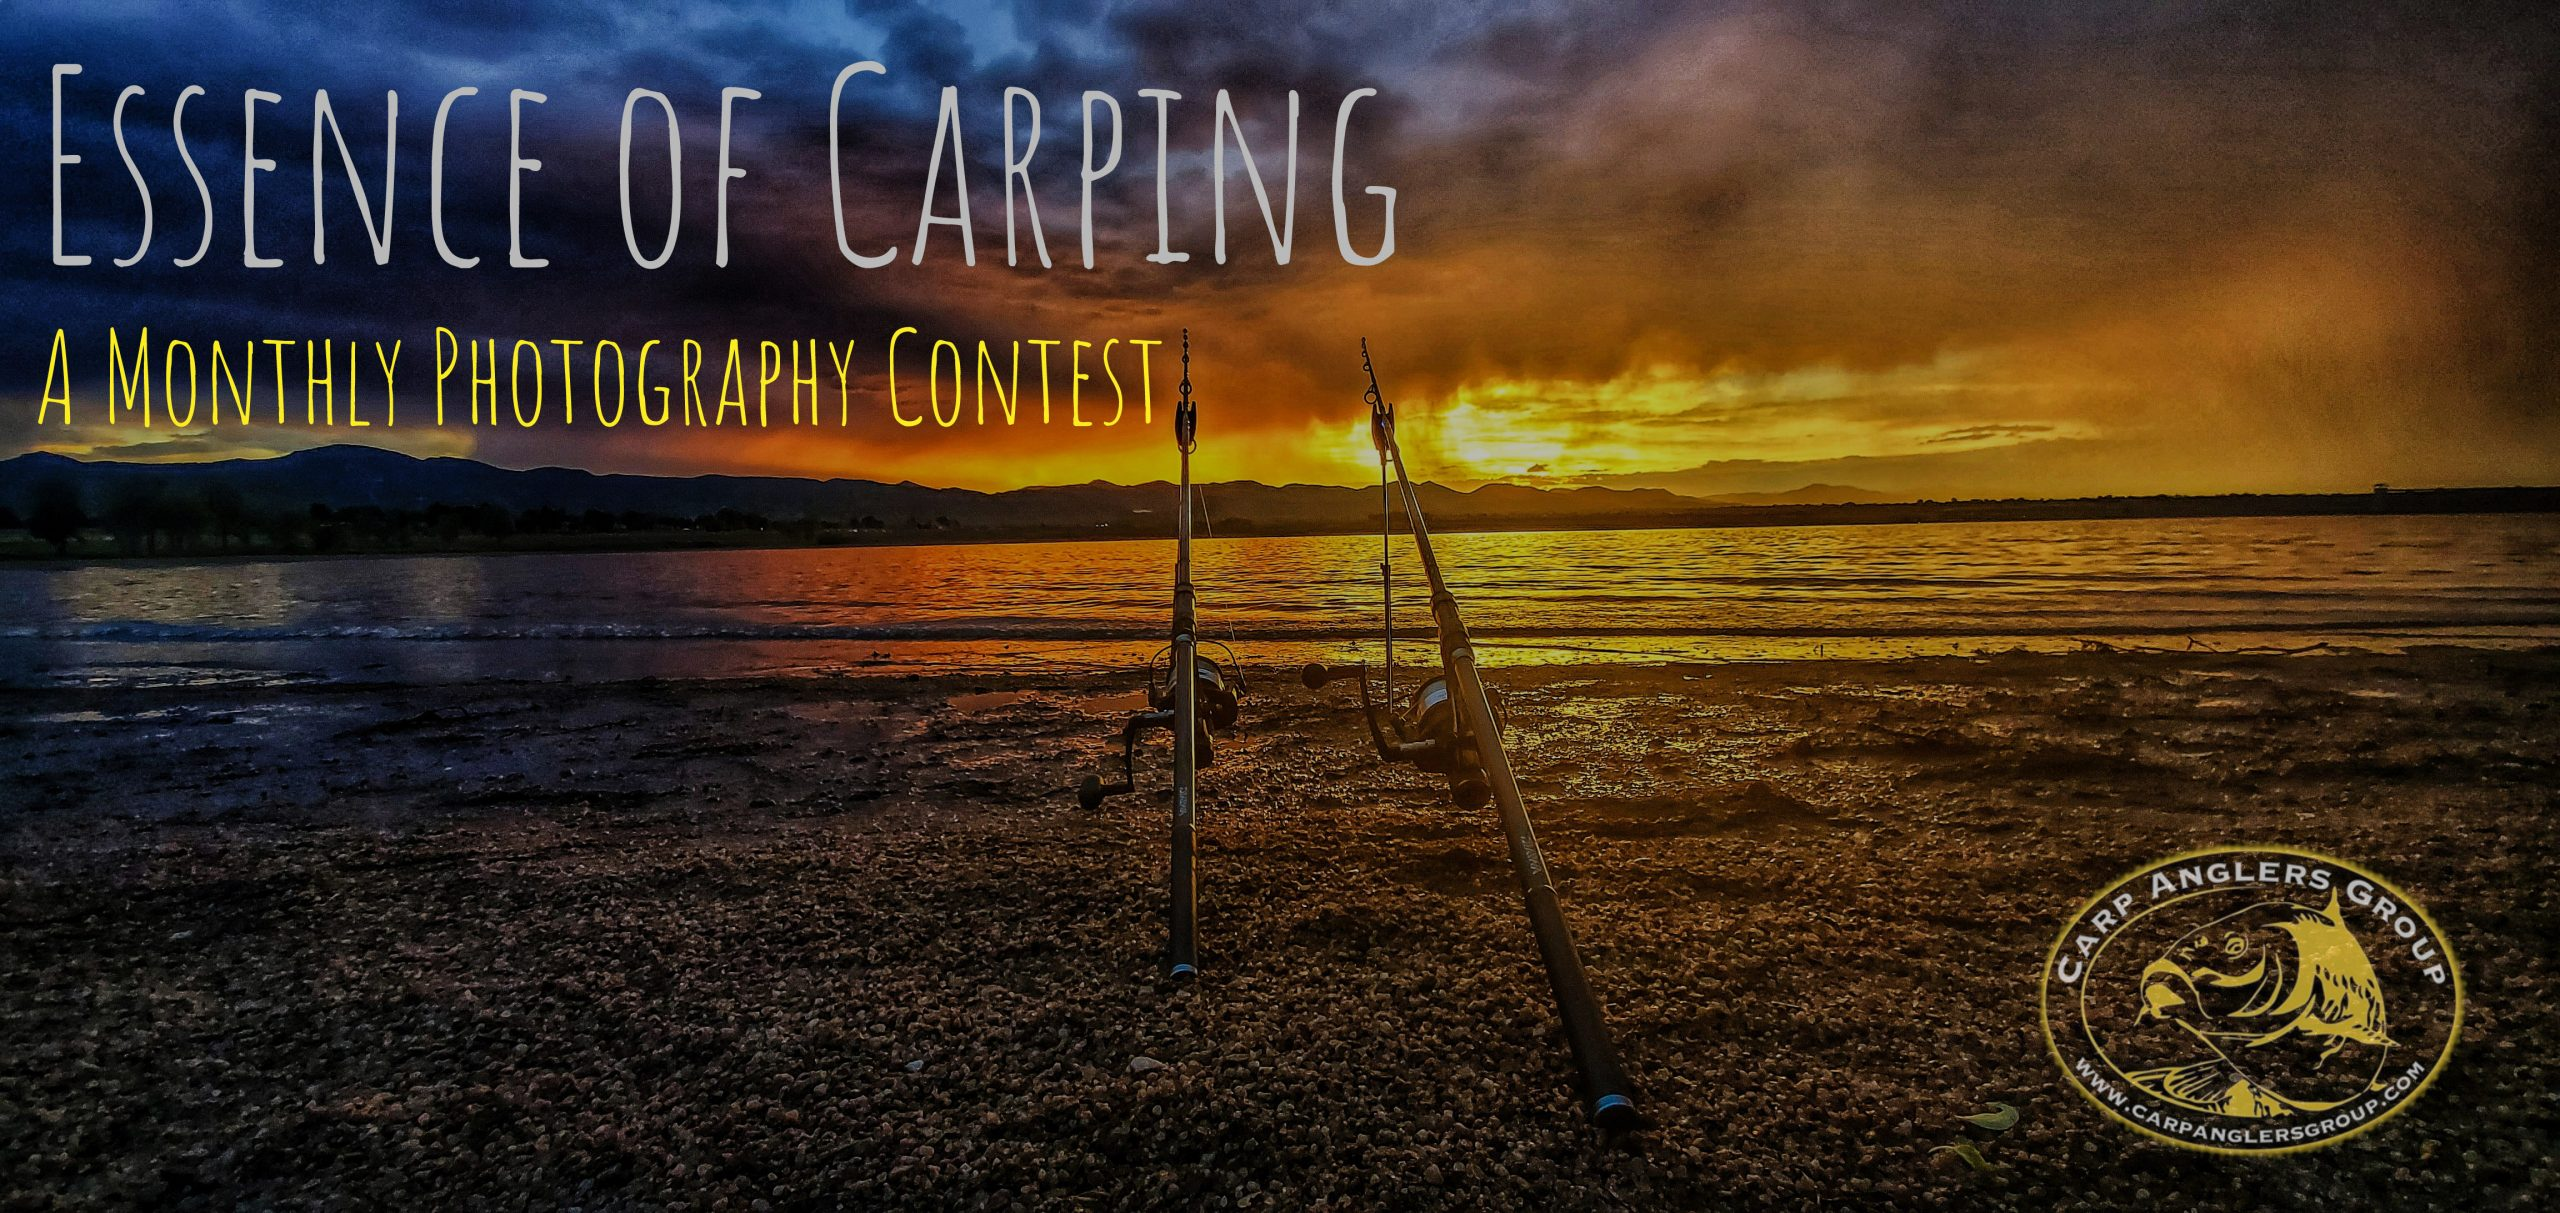 Essence of Carping Photo Competition